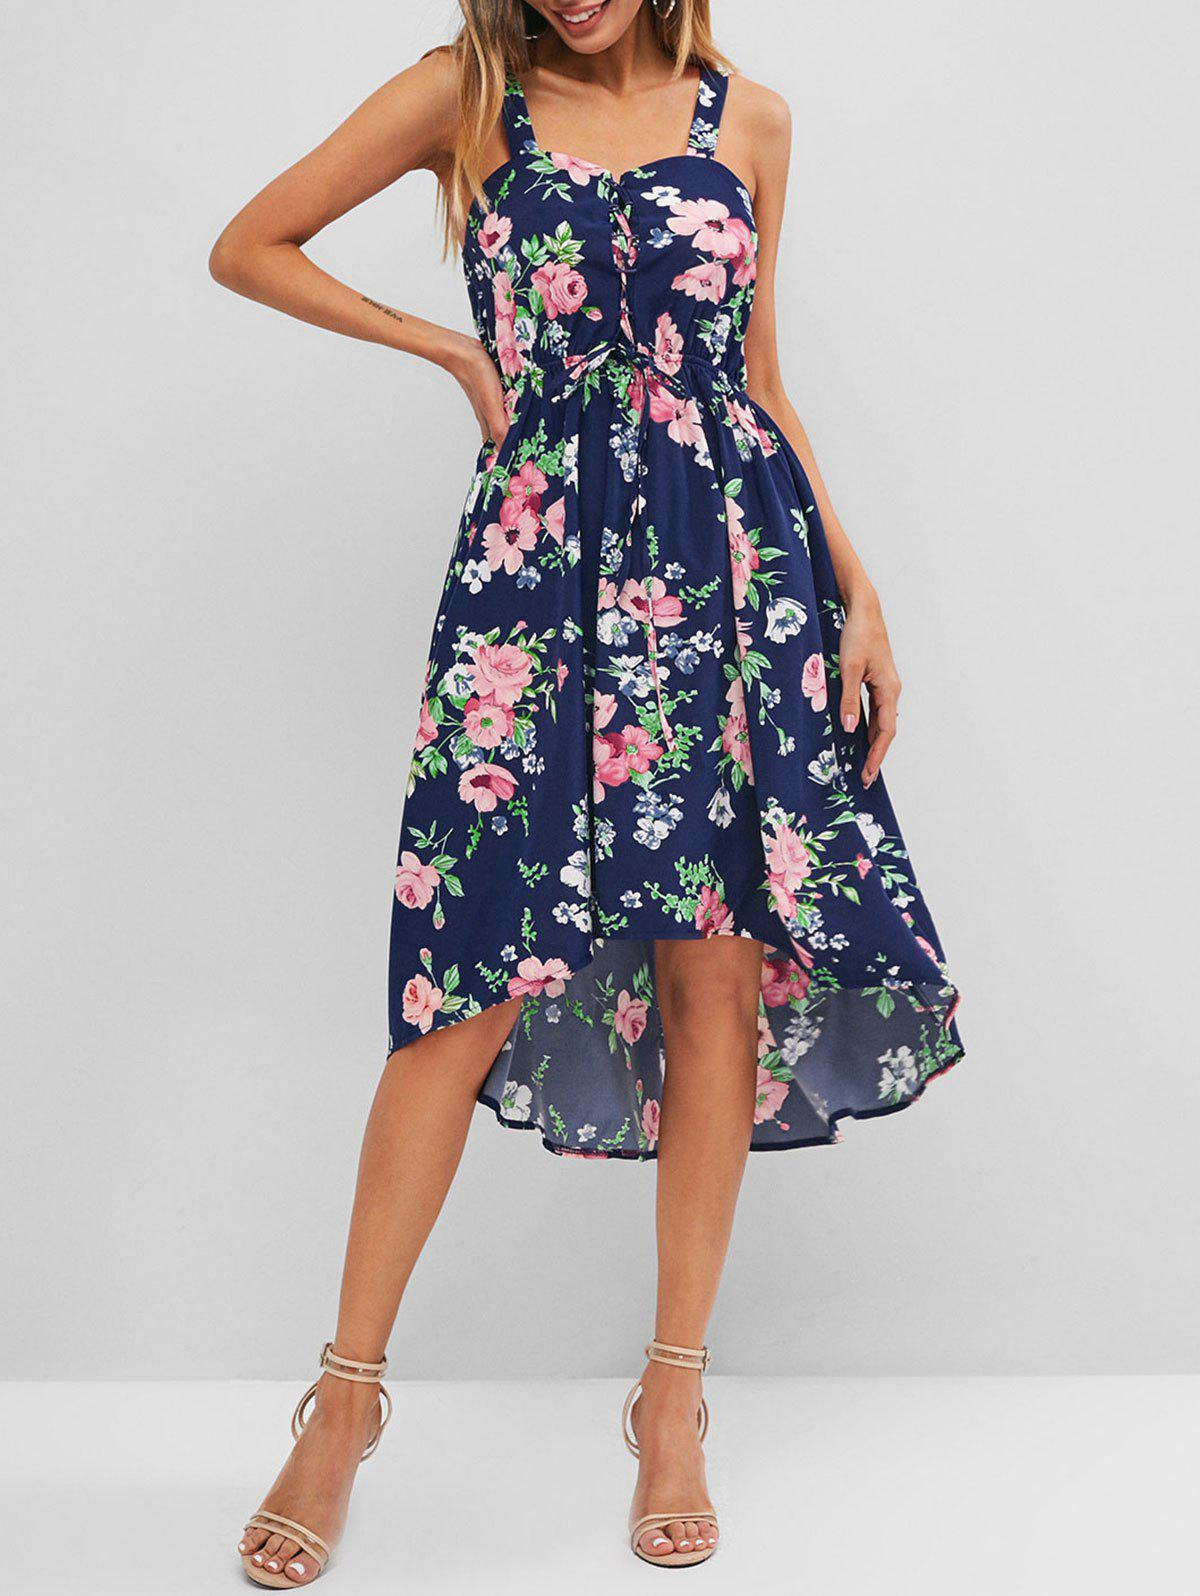 Flower Print Lace Up High Low Dress - DEEP BLUE S